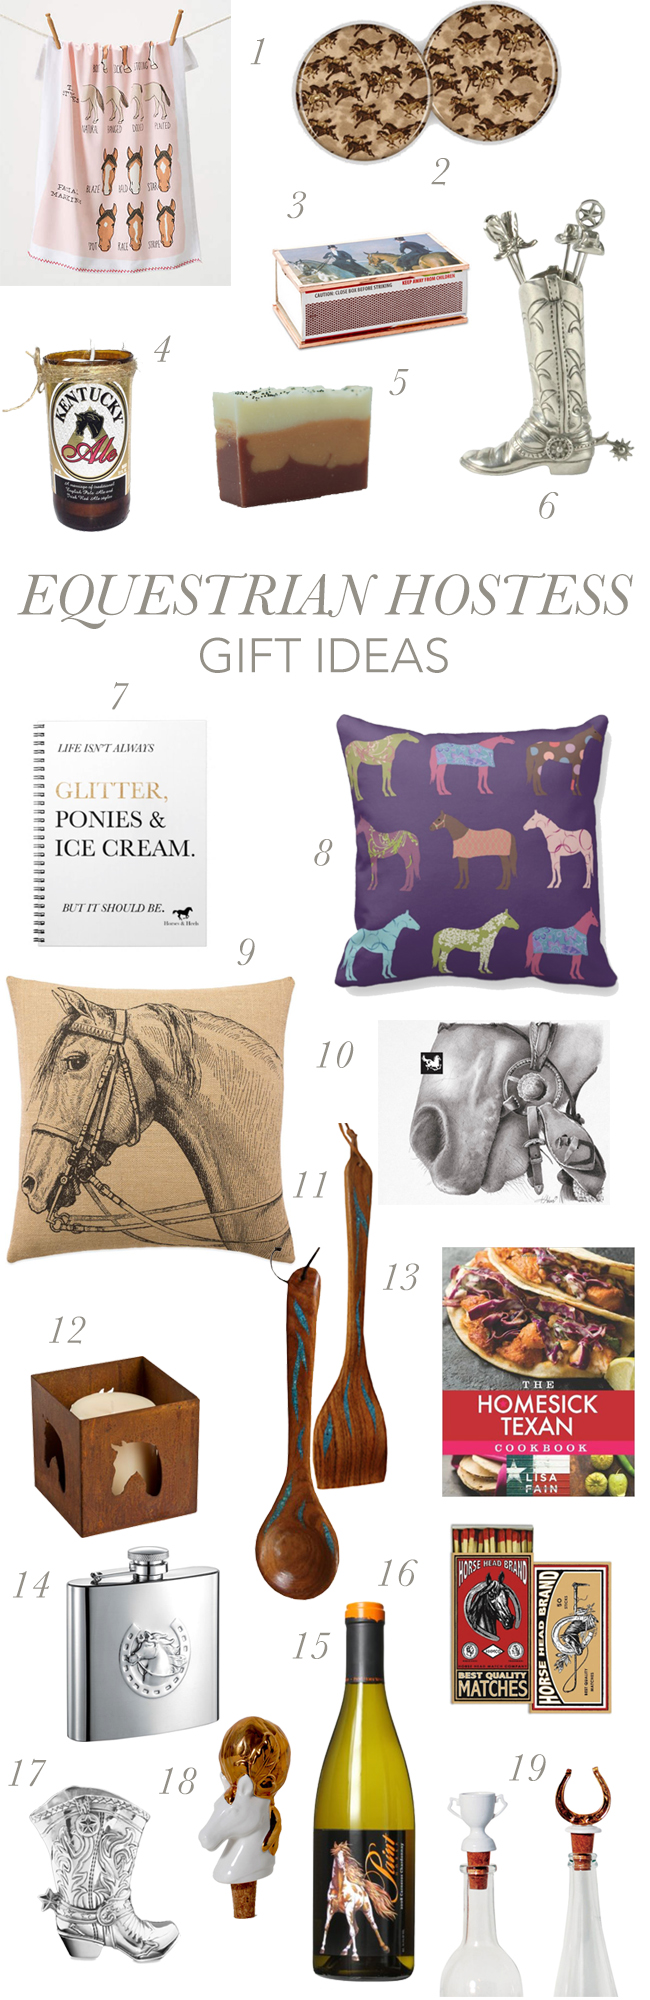 Equestrian Hostess Gifts